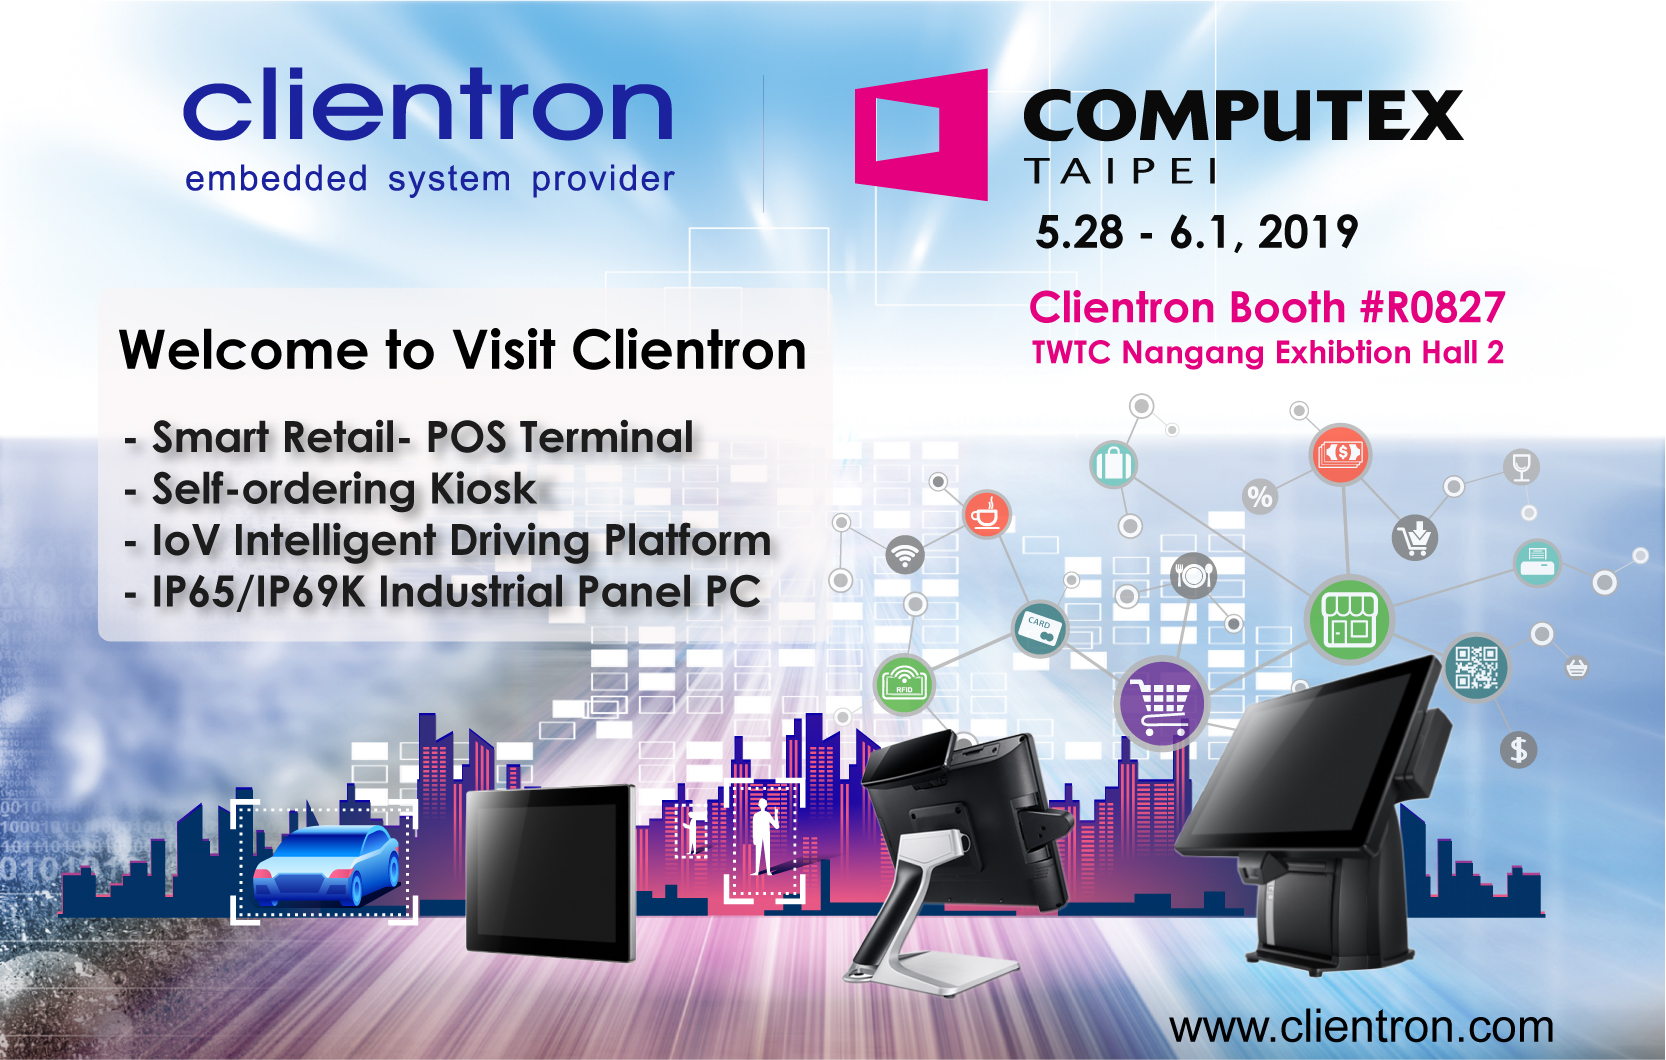 Clientron To Showcase The Latest Pos System And Iov Intelligent In Vehicle Driving Solution At Computex 2019 News Clientron Corp Thin Client Pos System Automotive Electronics Smart Office Smart Retail Smart Automotive